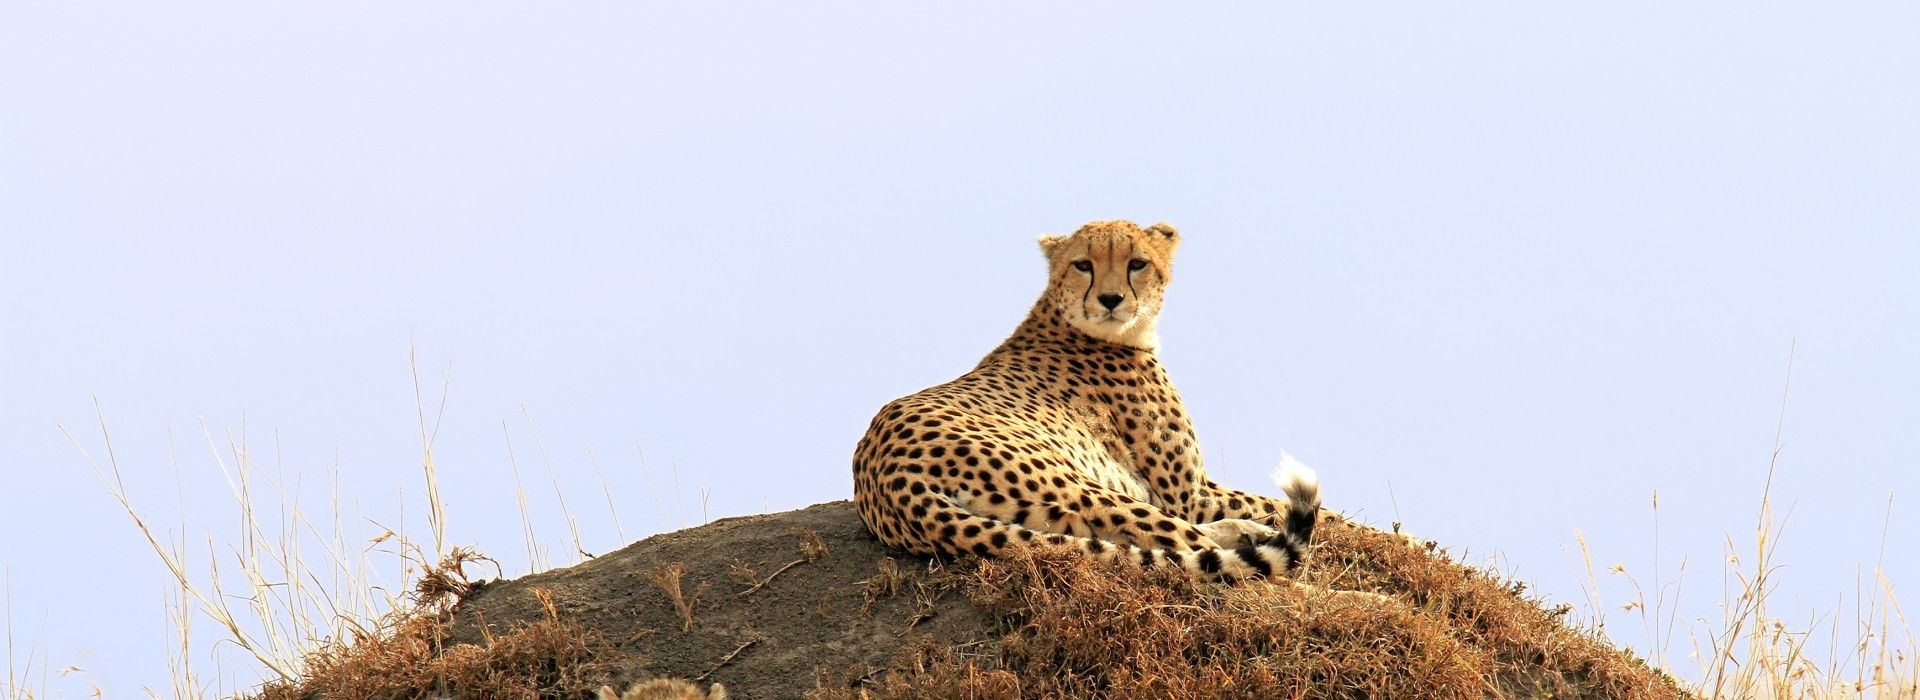 Special interests and hobbies Tours in Africa